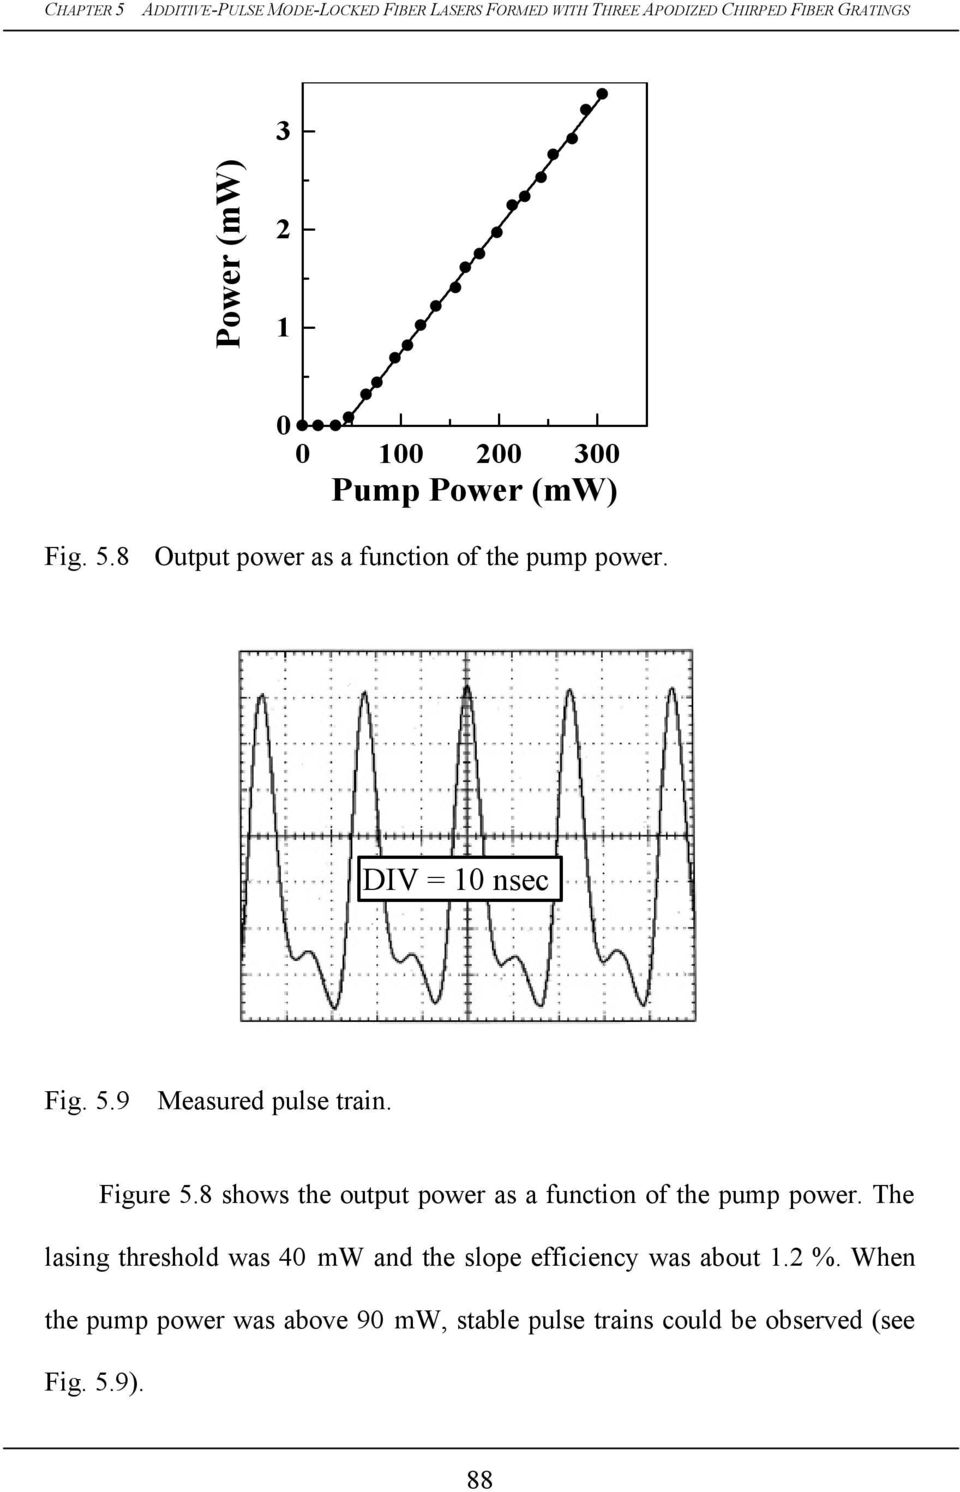 8 shows the output power as a function of the pump power.